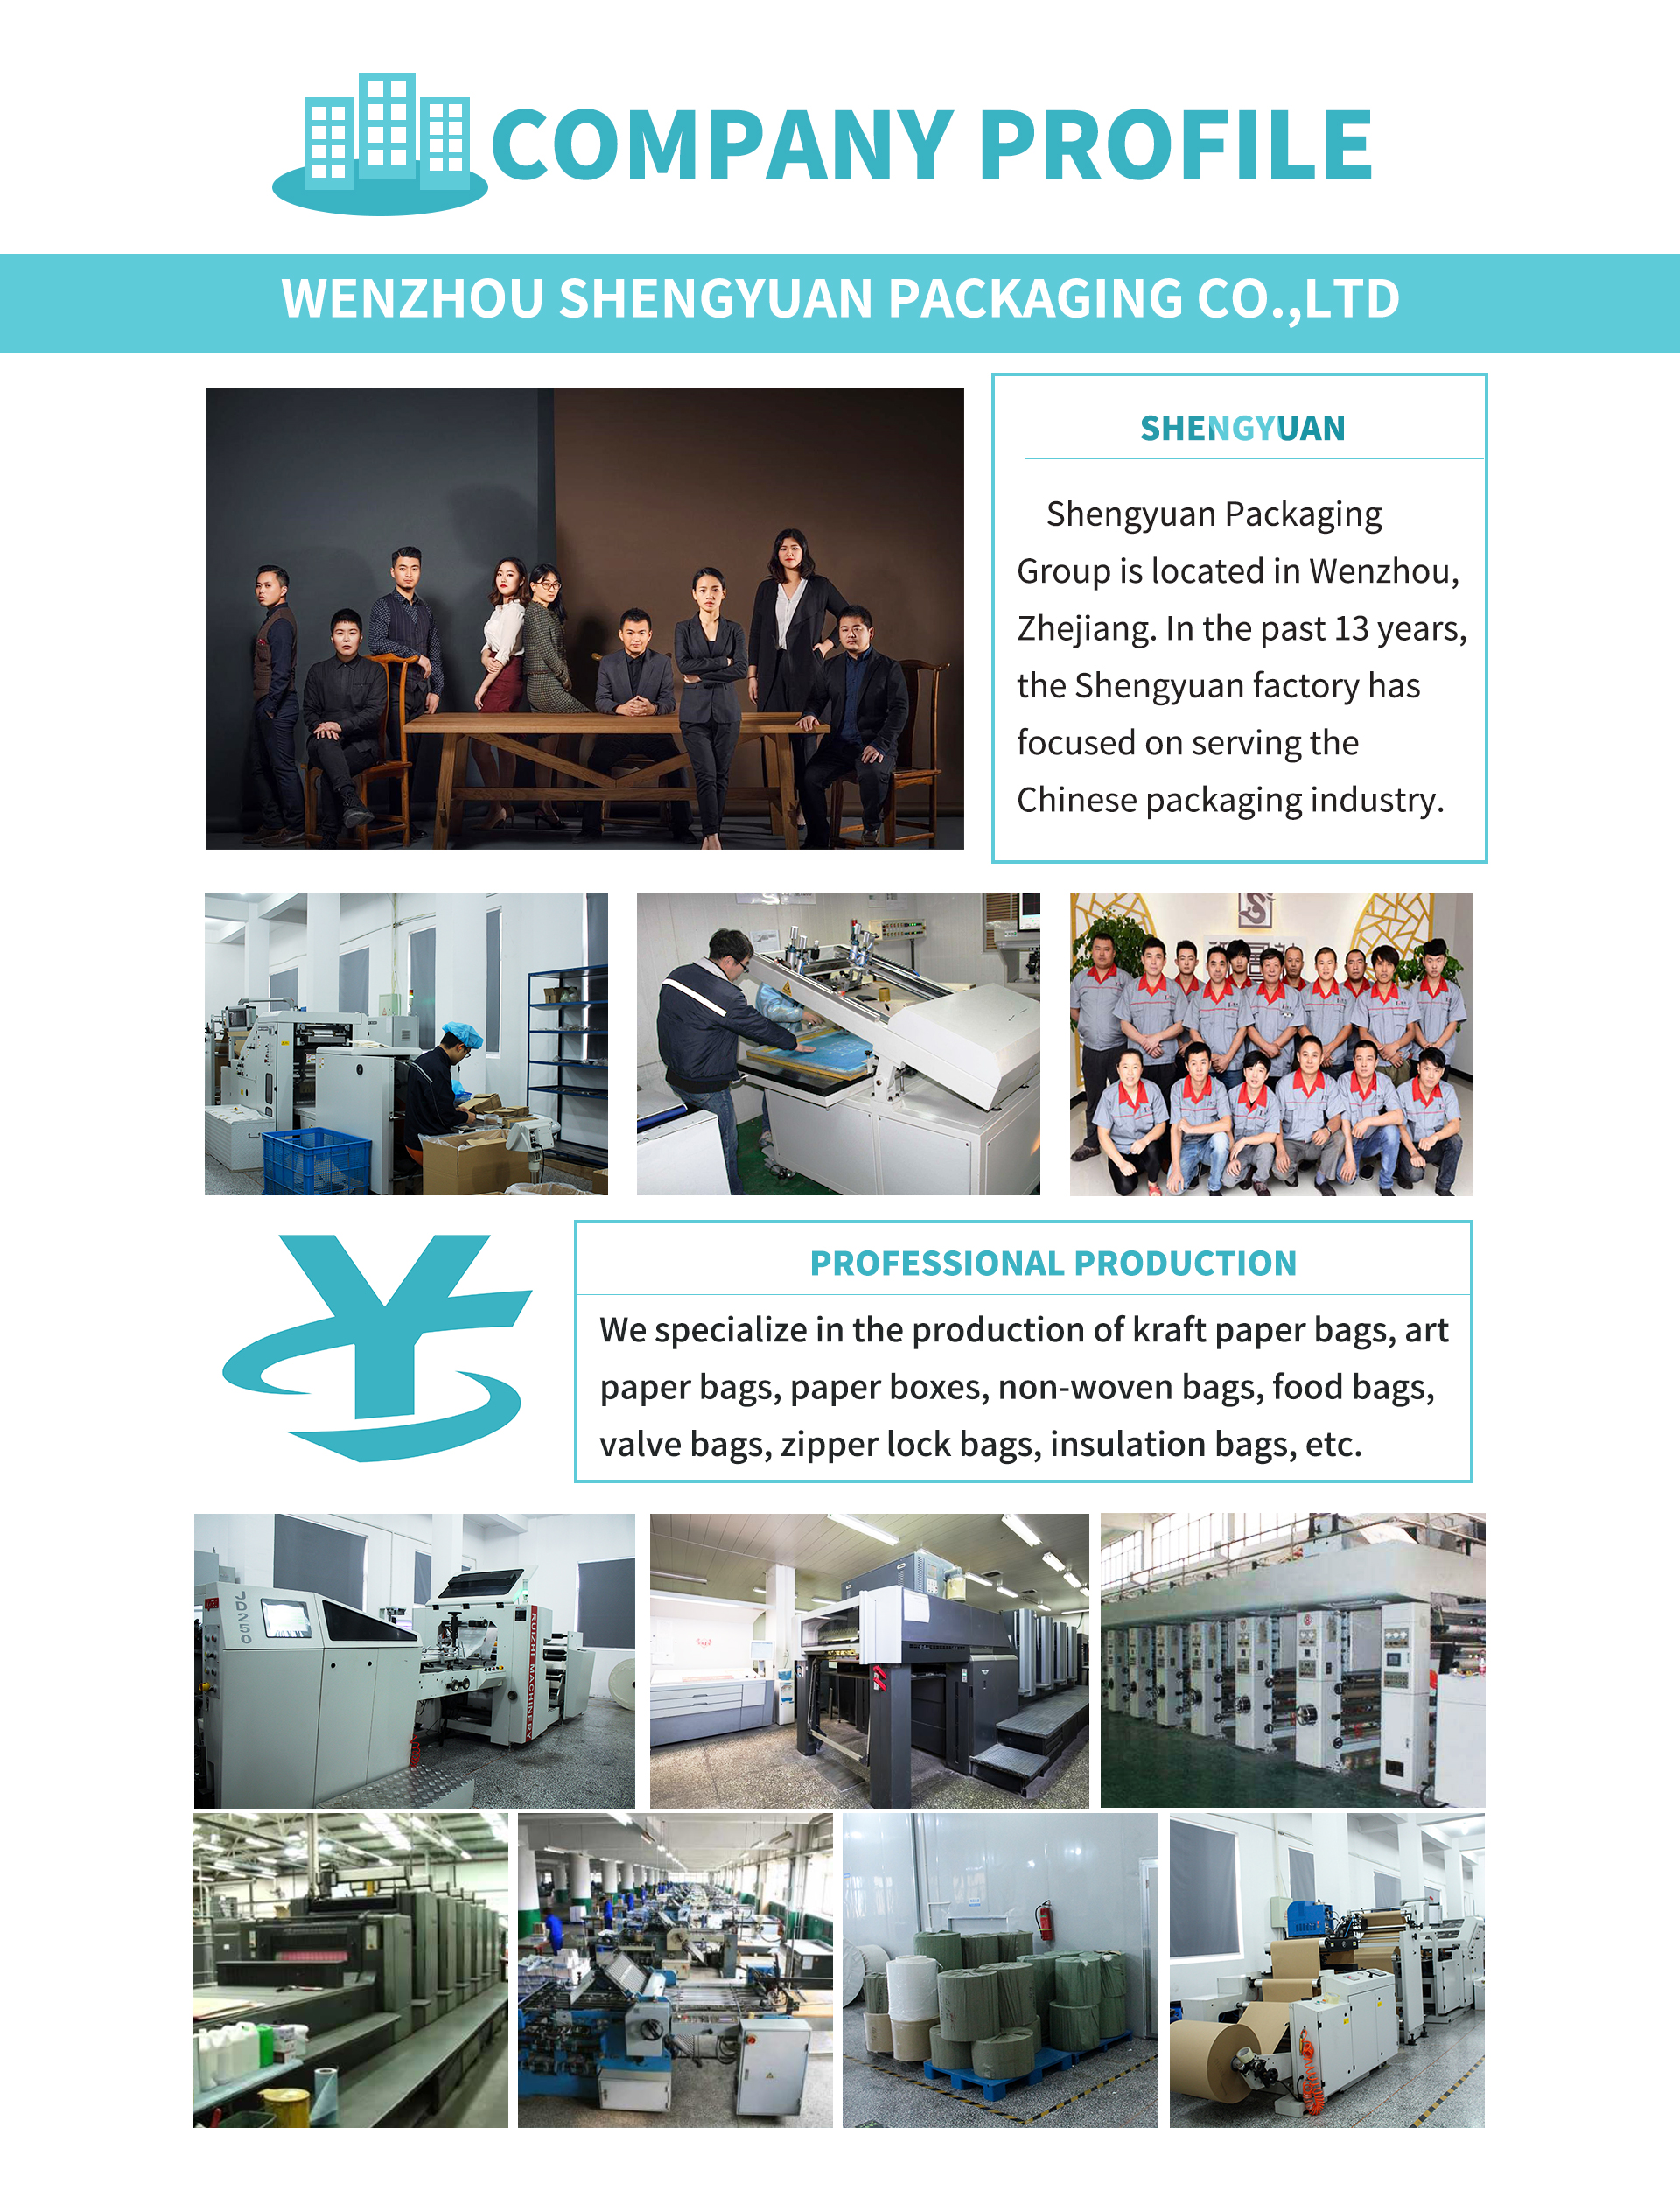 Sheng yuan investment advisors limited credit john keil investments